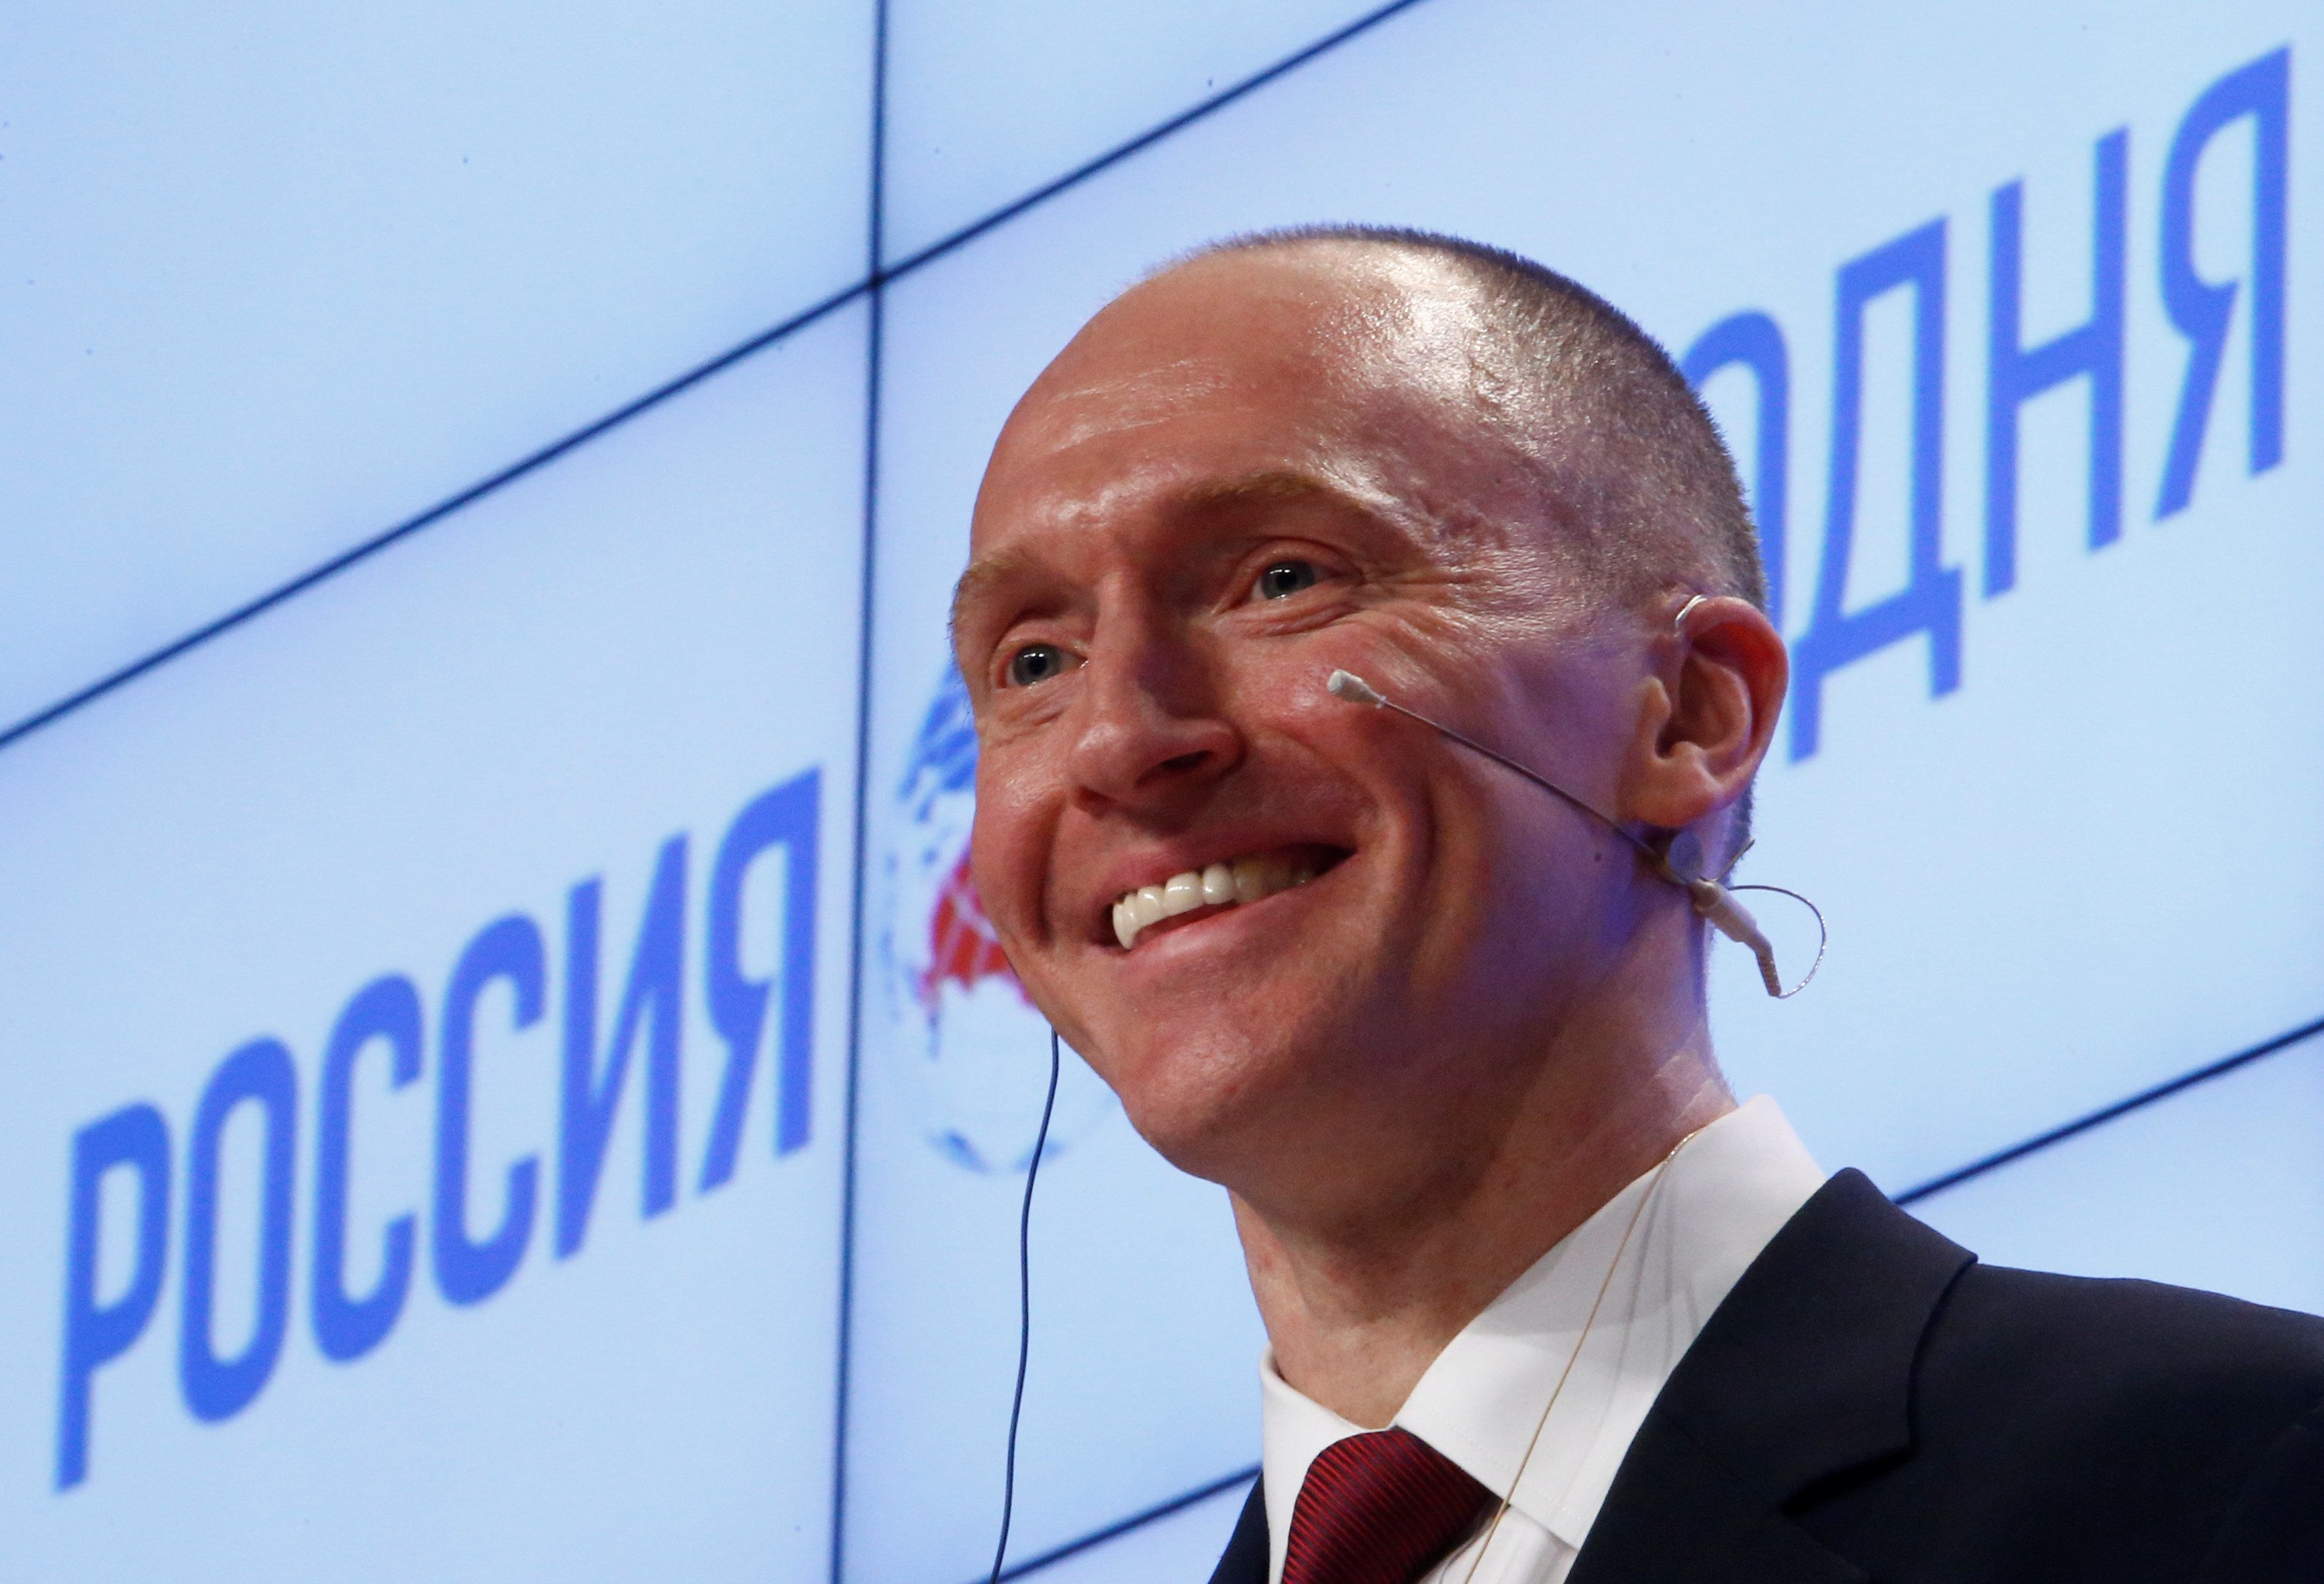 Carter Page: The Dodgy Dossier was a Political Stunt and False